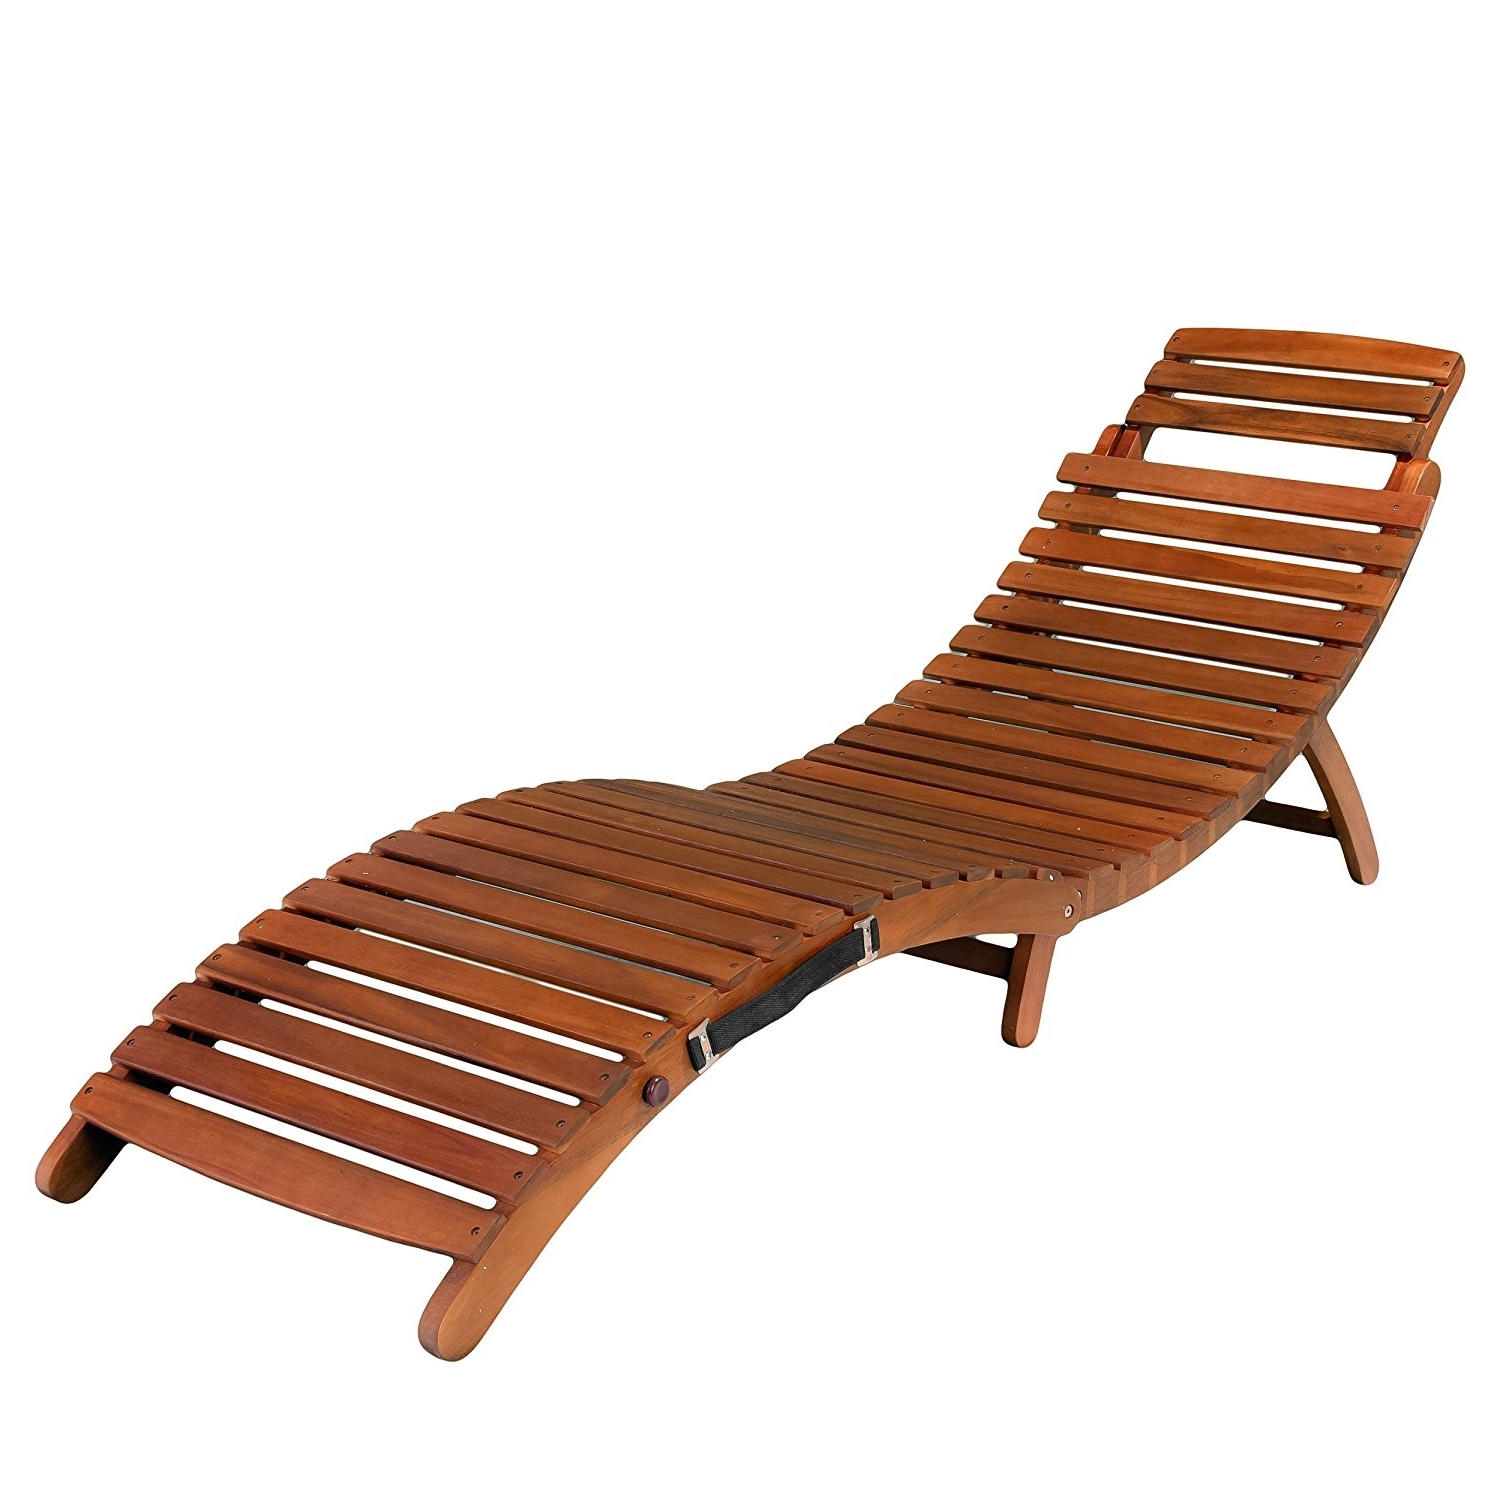 Amazon: Best Selling Del Rio Wood Outdoor Chaise Lounge Inside Well Liked Contemporary Outdoor Chaise Lounge Chairs (View 1 of 15)